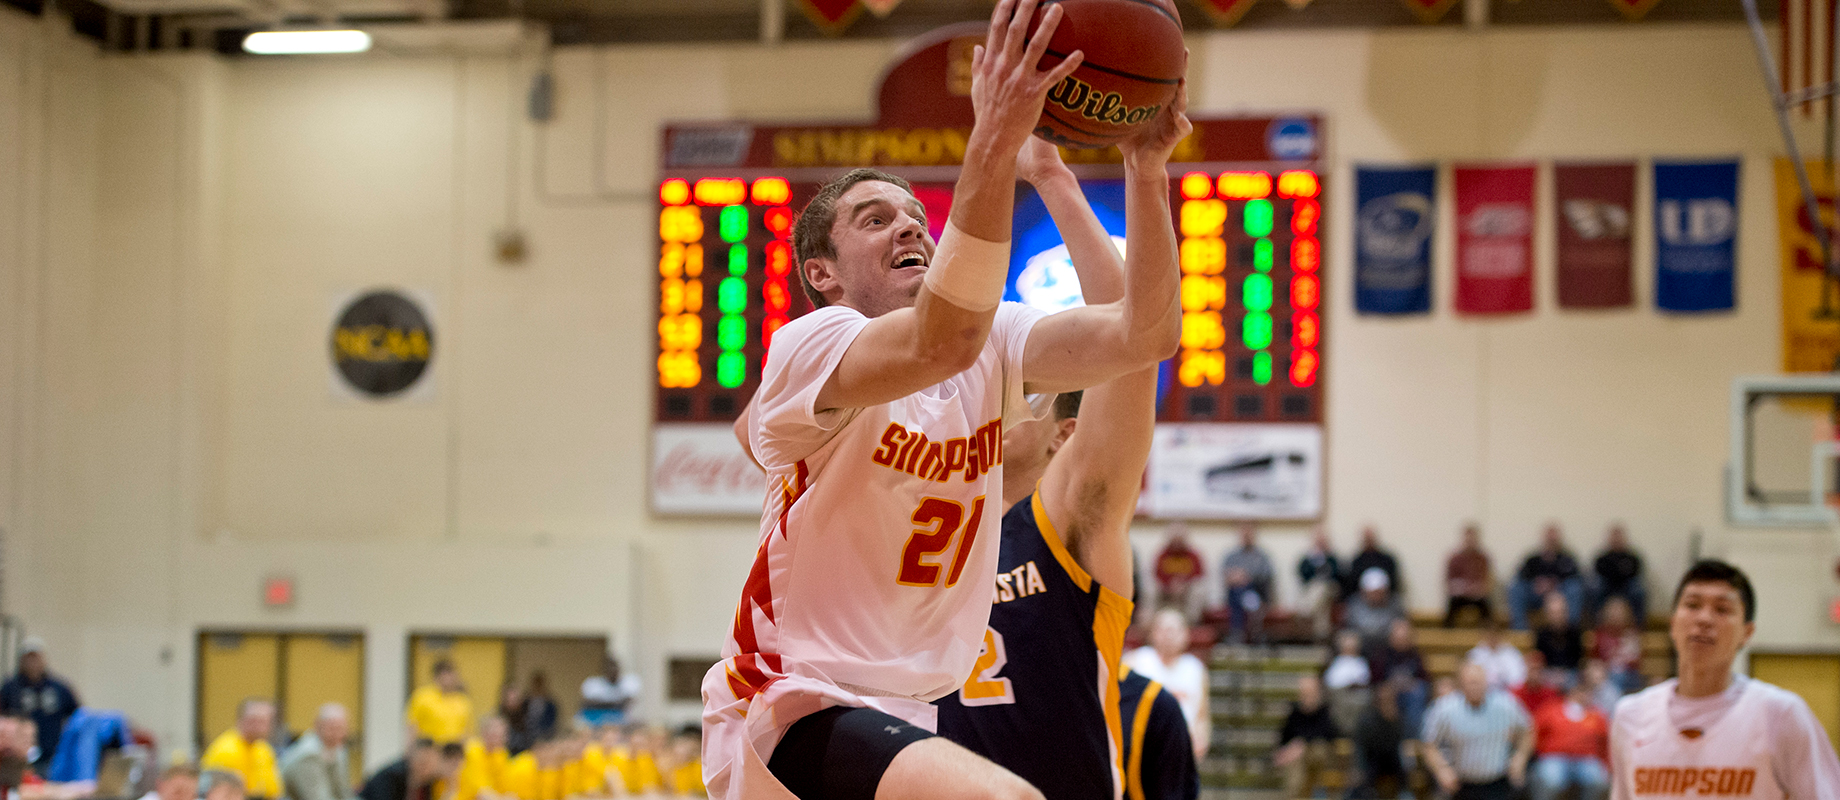 Junior men's basketball player Conor Riordan